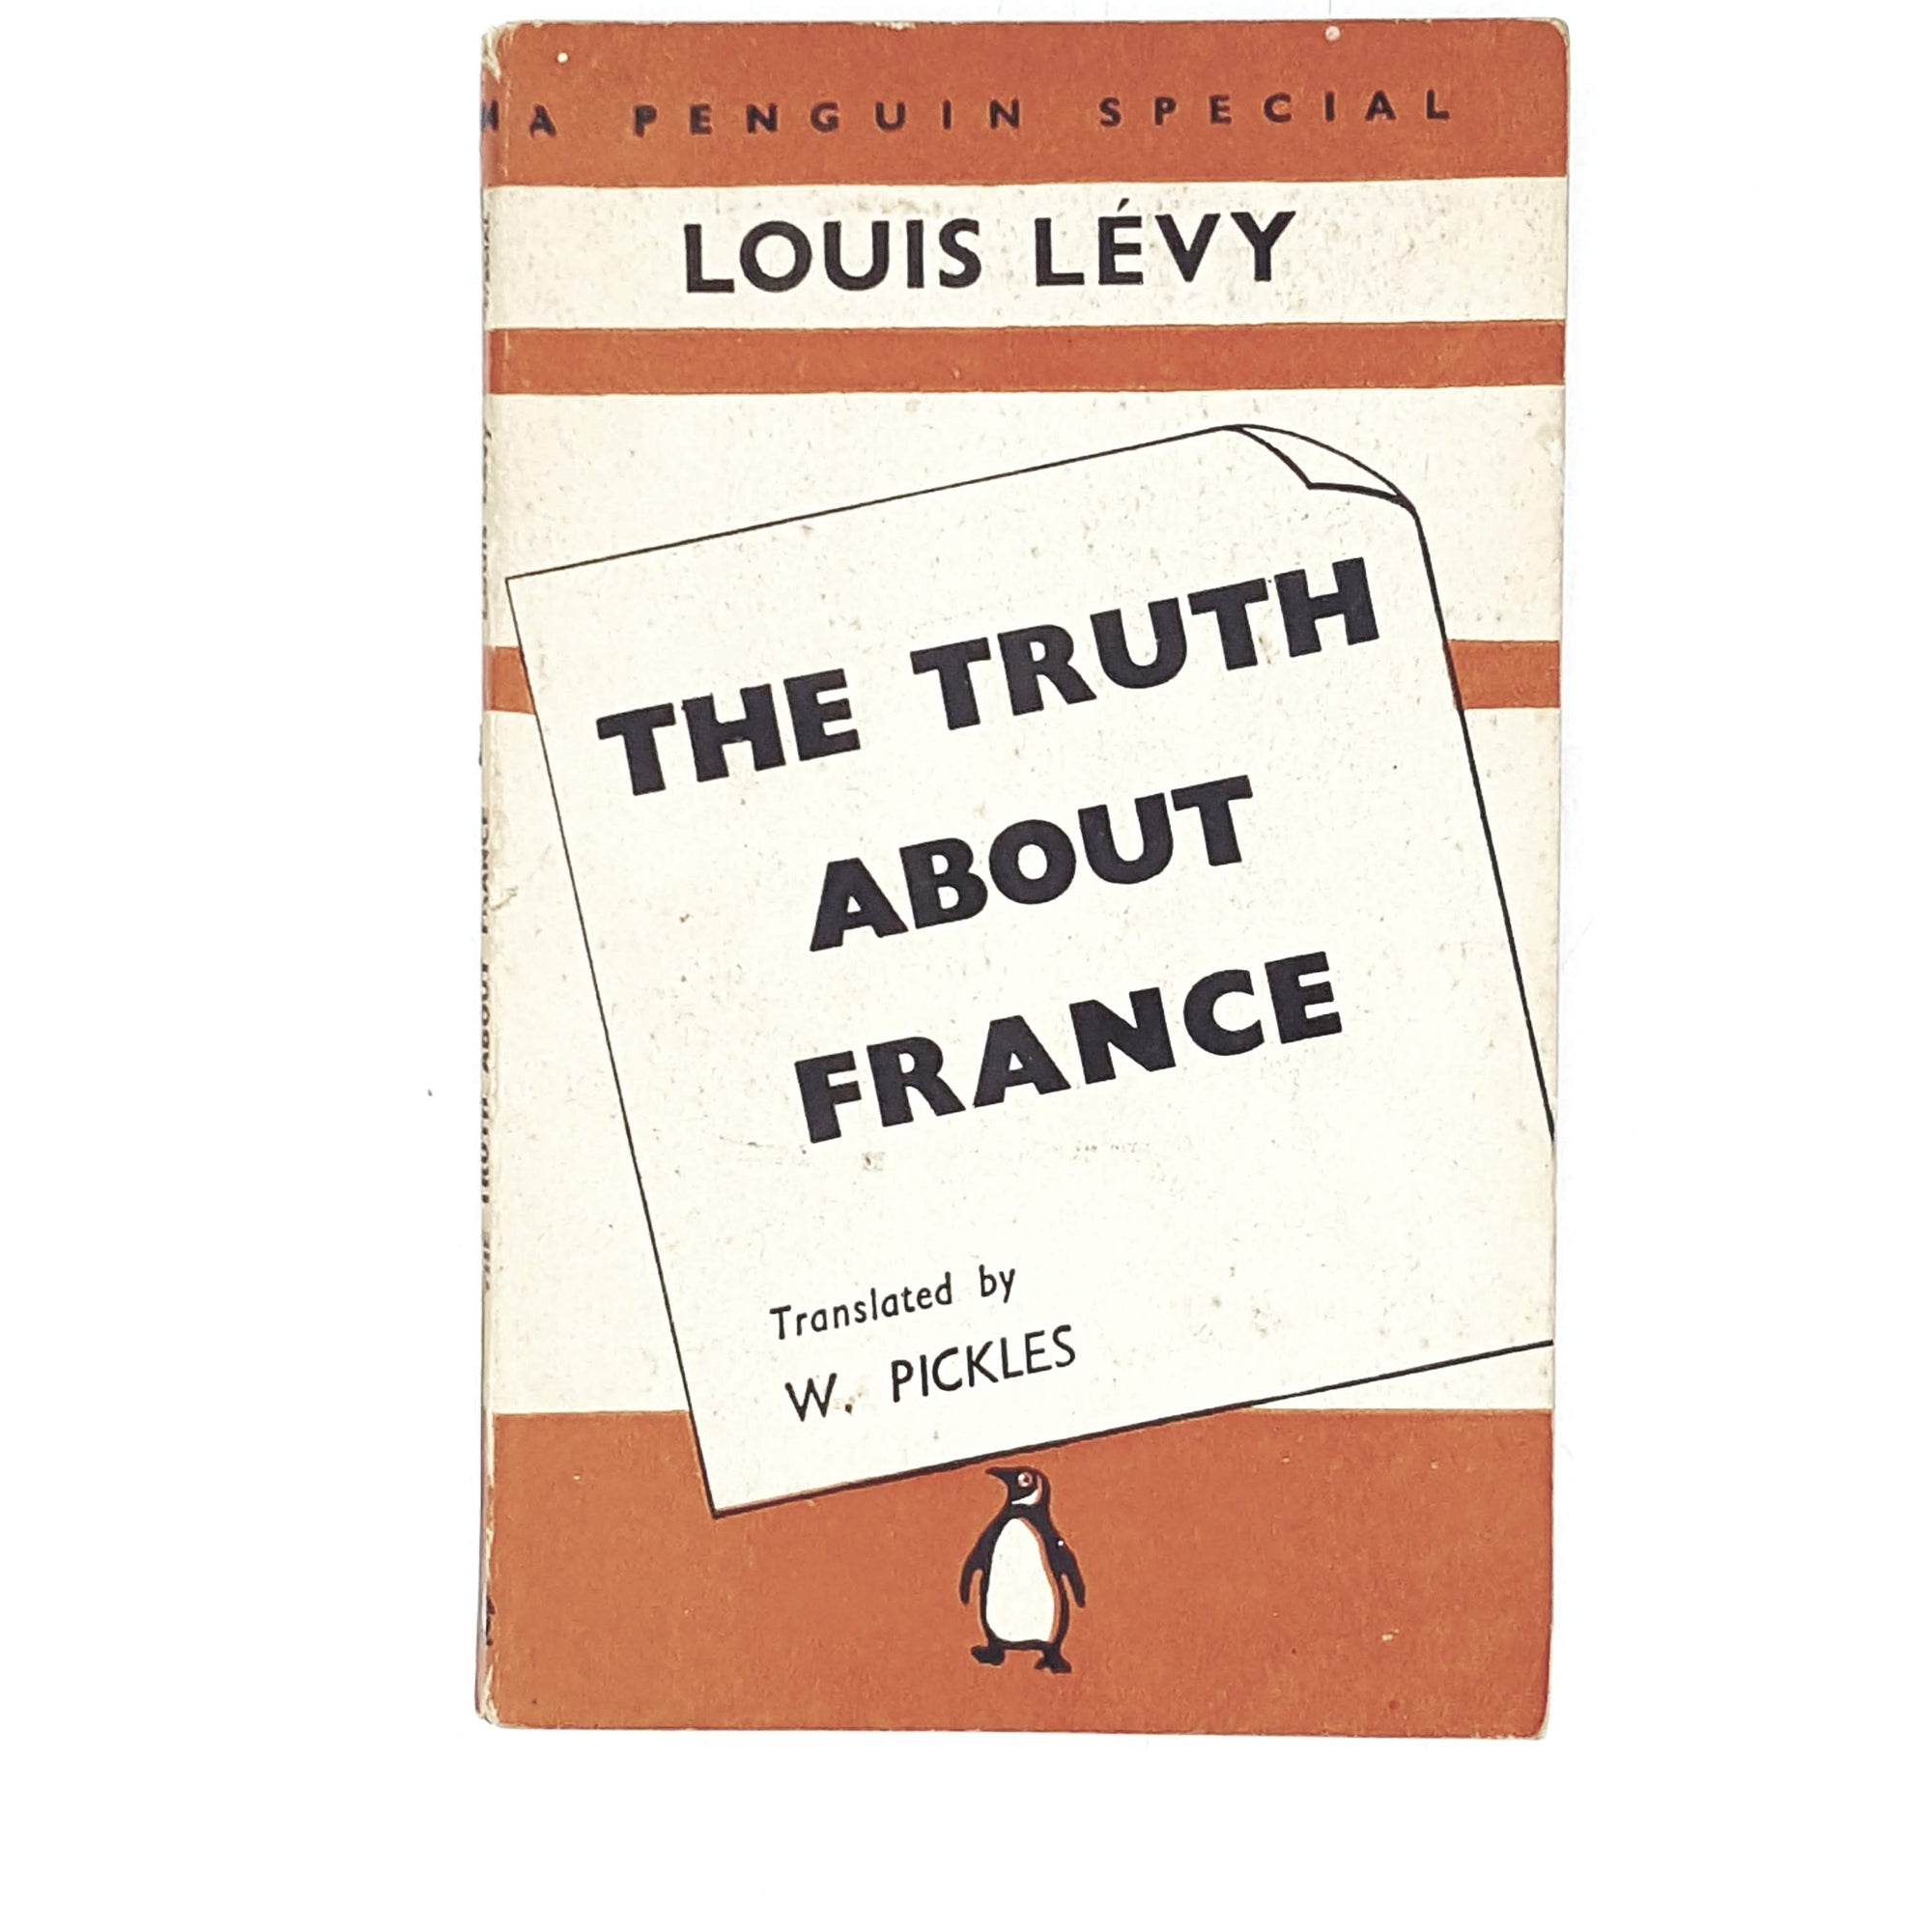 Vintage Penguin The Truth About France by Louis Levy 1941